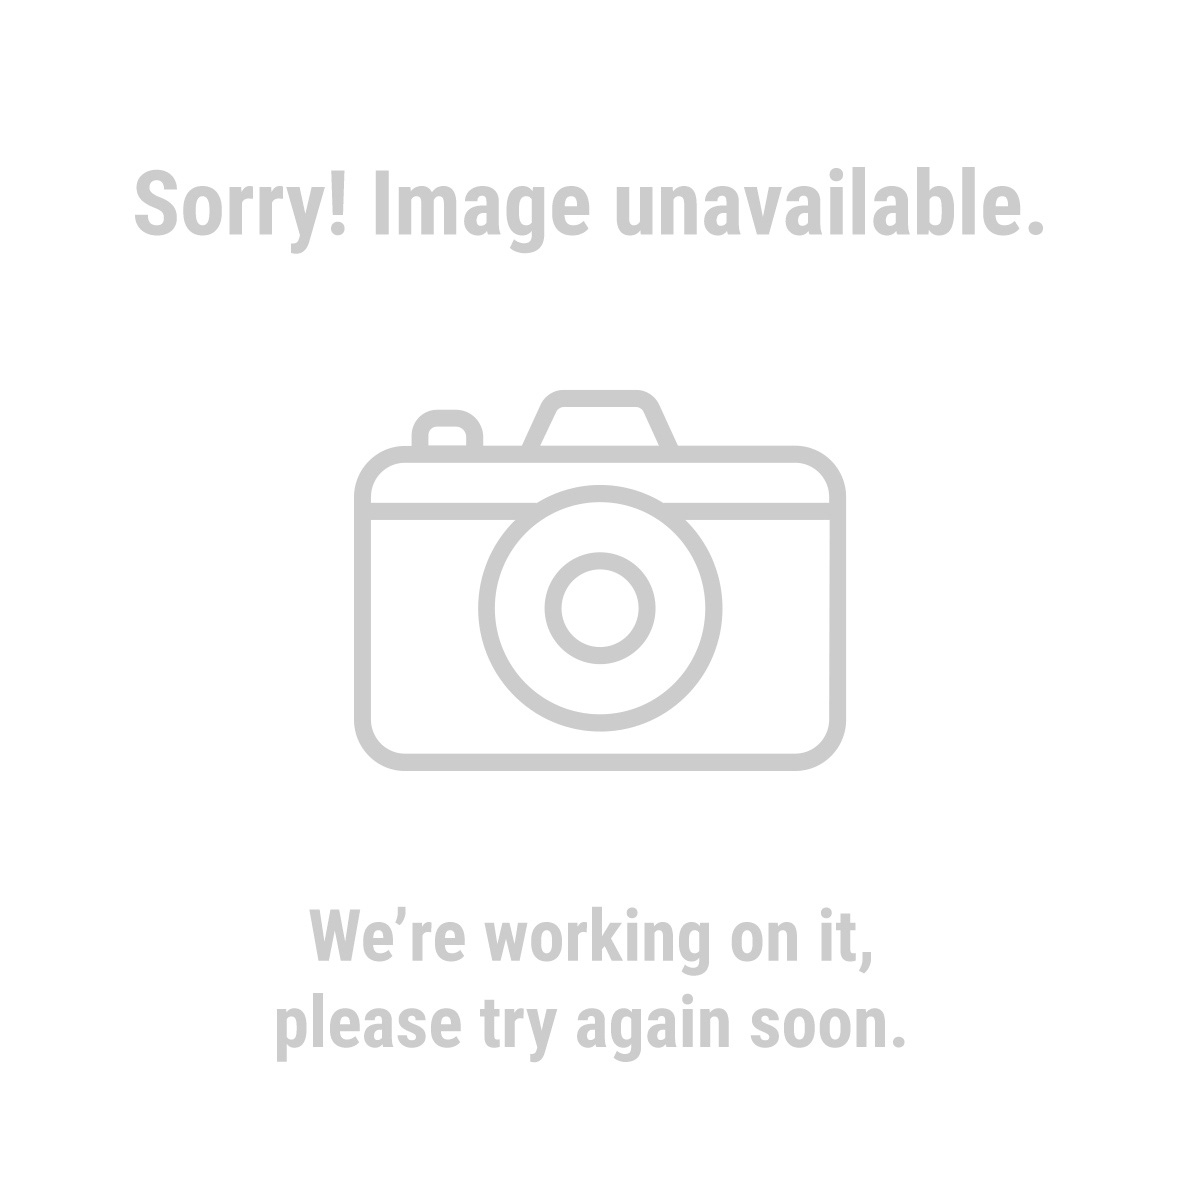 Who Recharges Fire Extinguishers Security Sistems